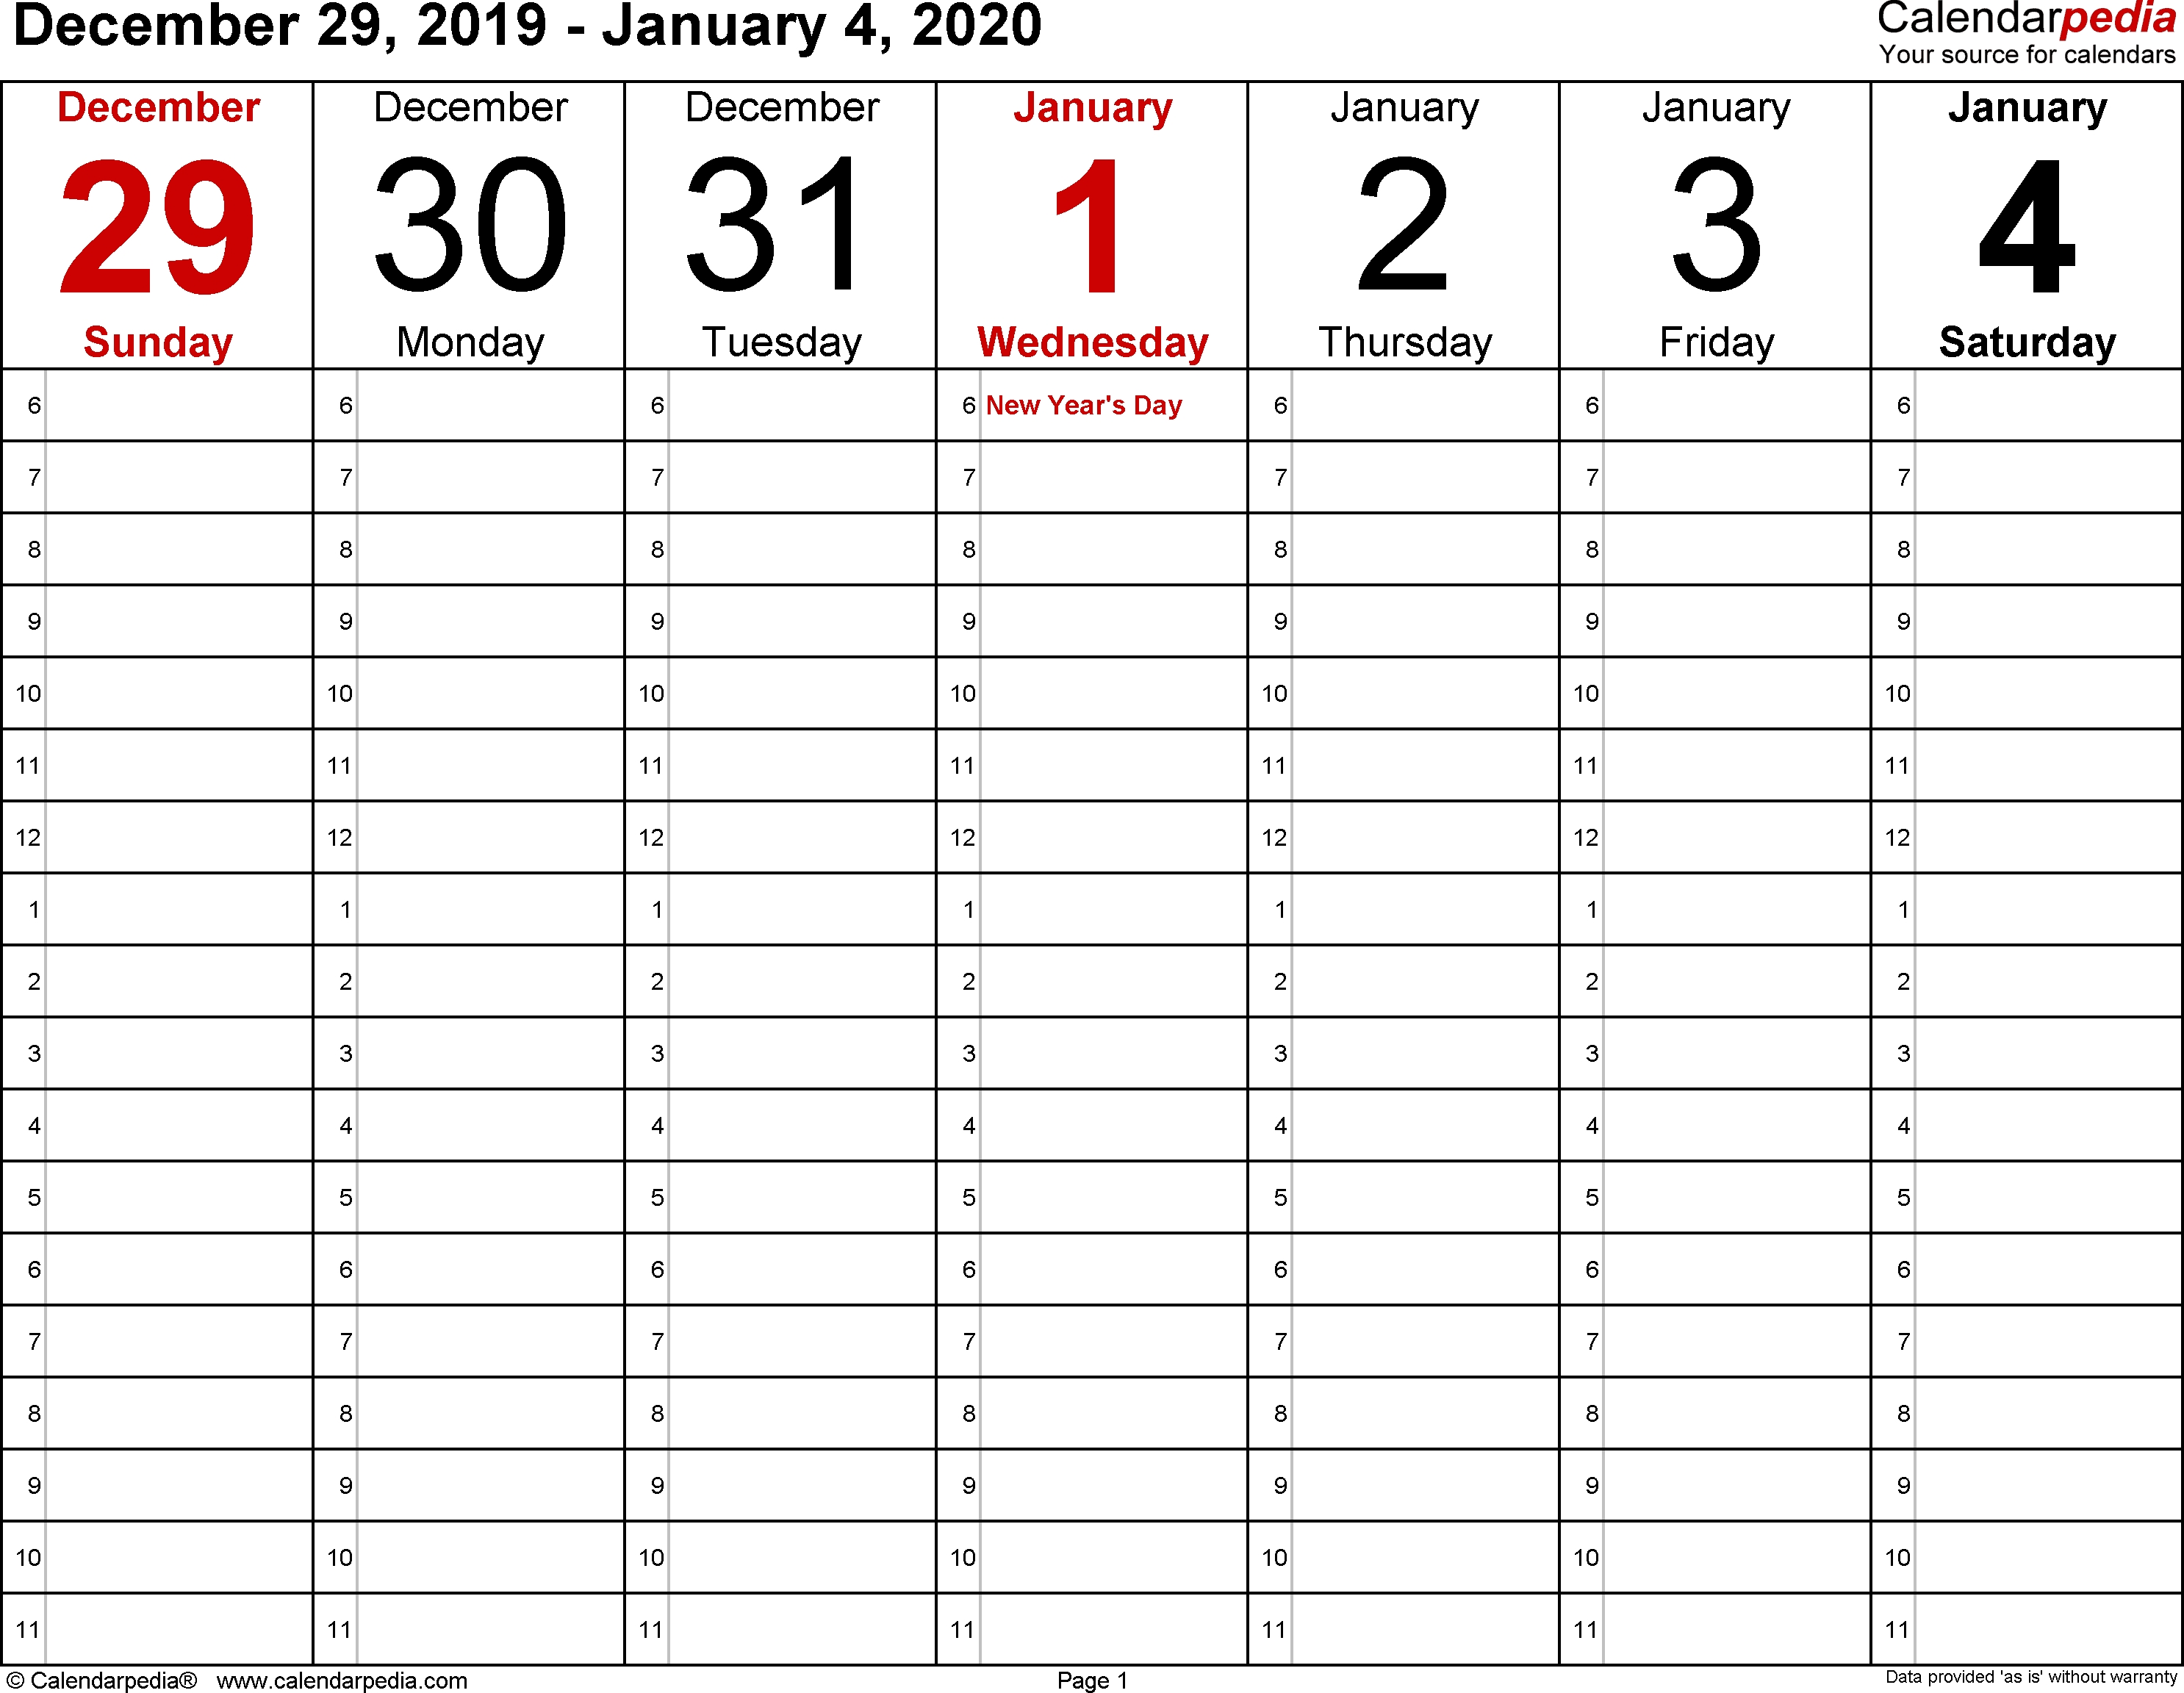 Weekly Calendar 2020 For Excel - 12 Free Printable Templates-Excel Calendar Template 8.5 X 11